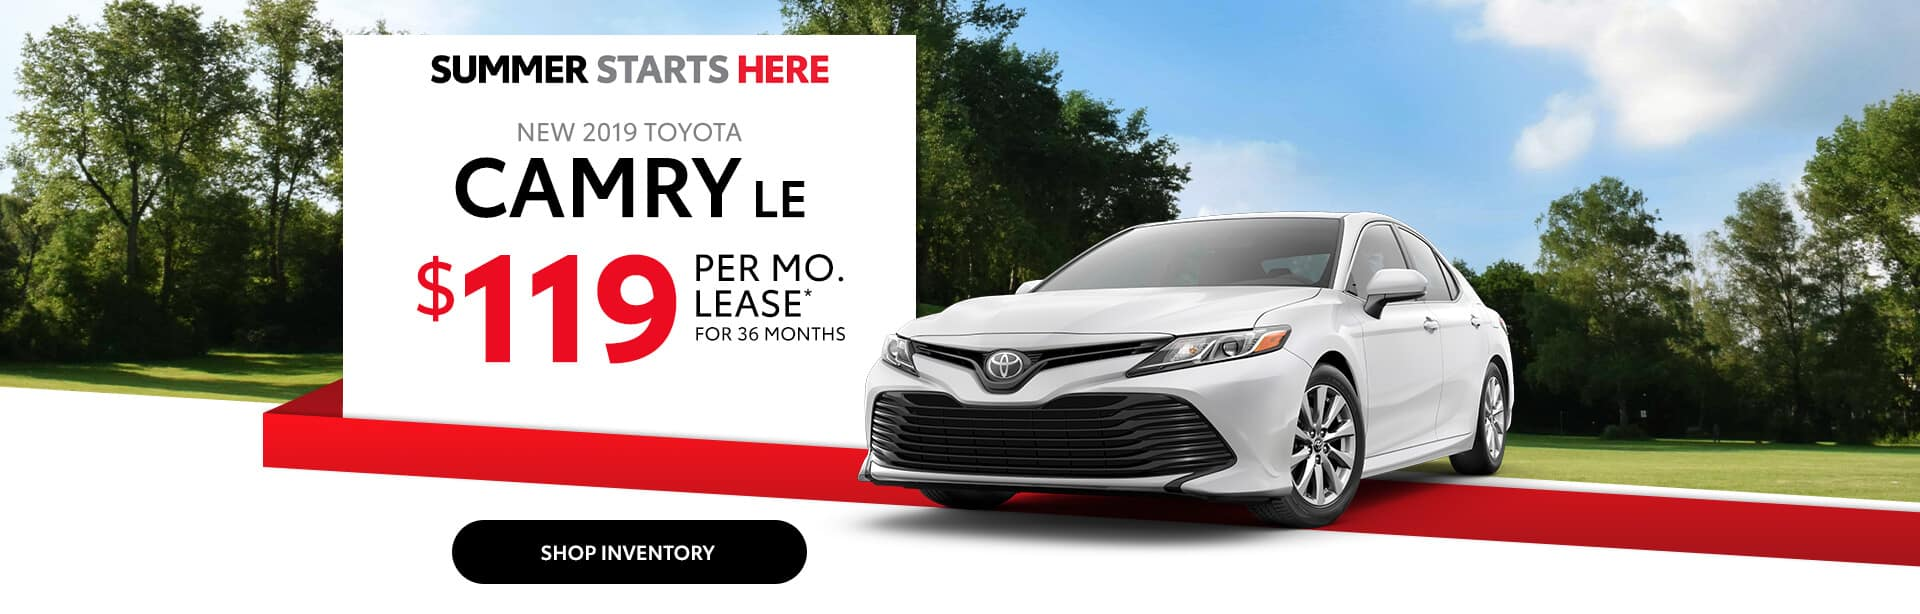 Lease a New Toyota Camry for $119/mo near Indianapolis, IN.